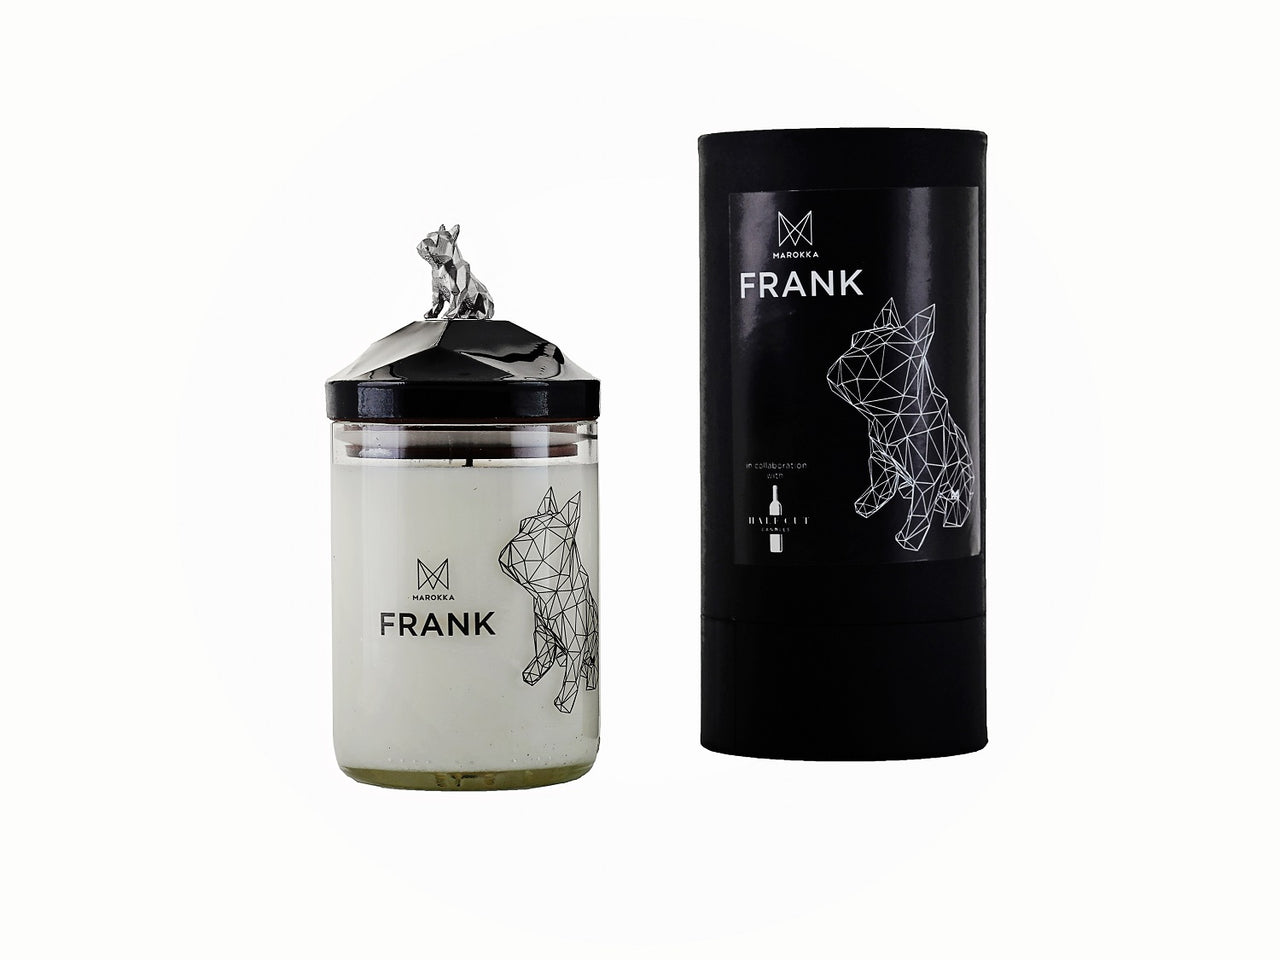 Handmade Natural Wax candle - French Bulldog design with matching lid and nickel charm